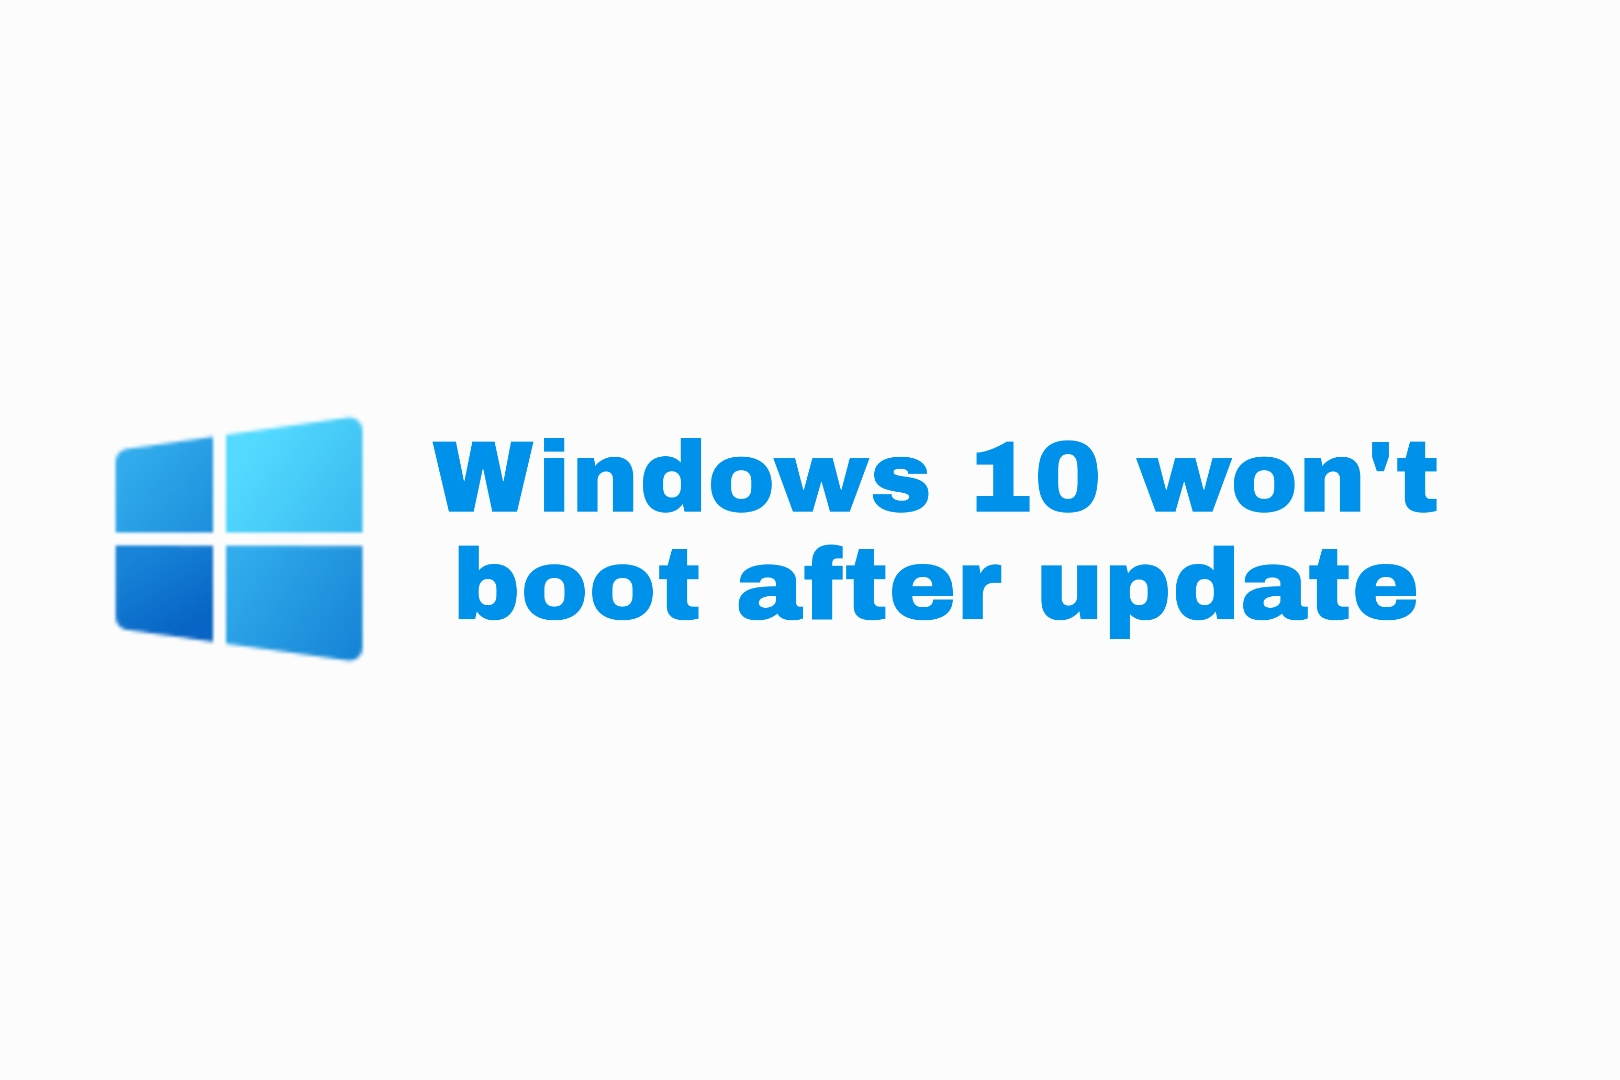 Windows error code 0xc0000098, 0xc0000034, 0xc000014c & others error codes - Ultimate guide - windows 10 won't boot after update